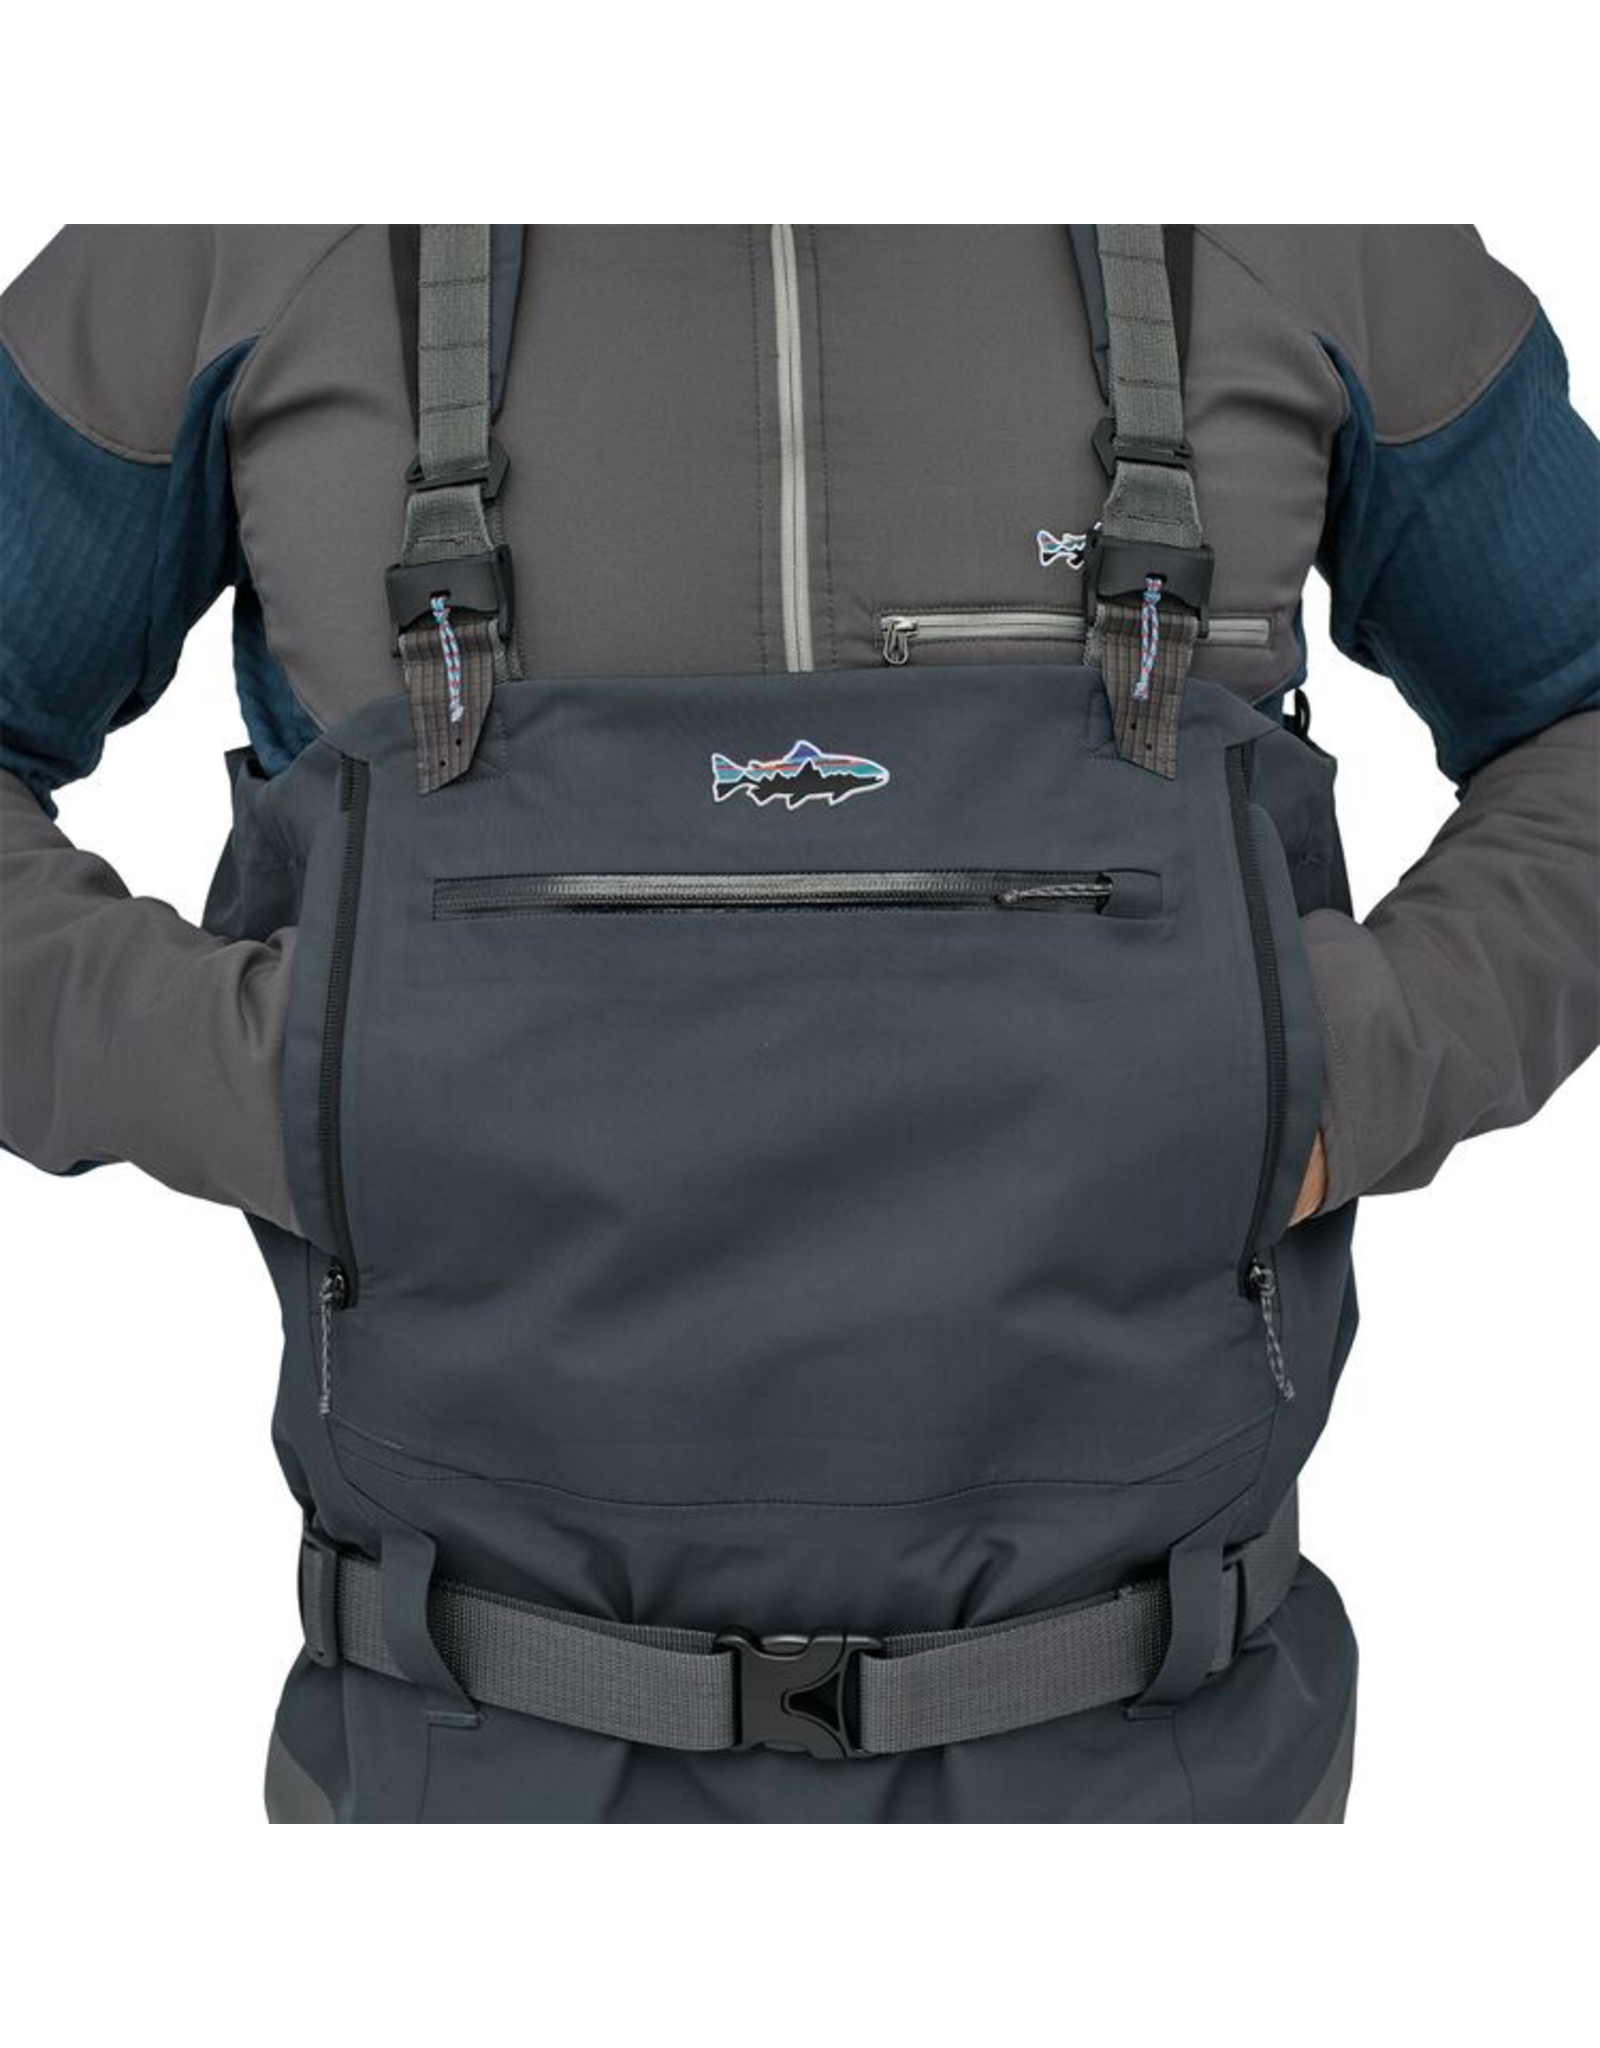 Patagonia Patagonia M's Swiftcurrent Expedition Waders